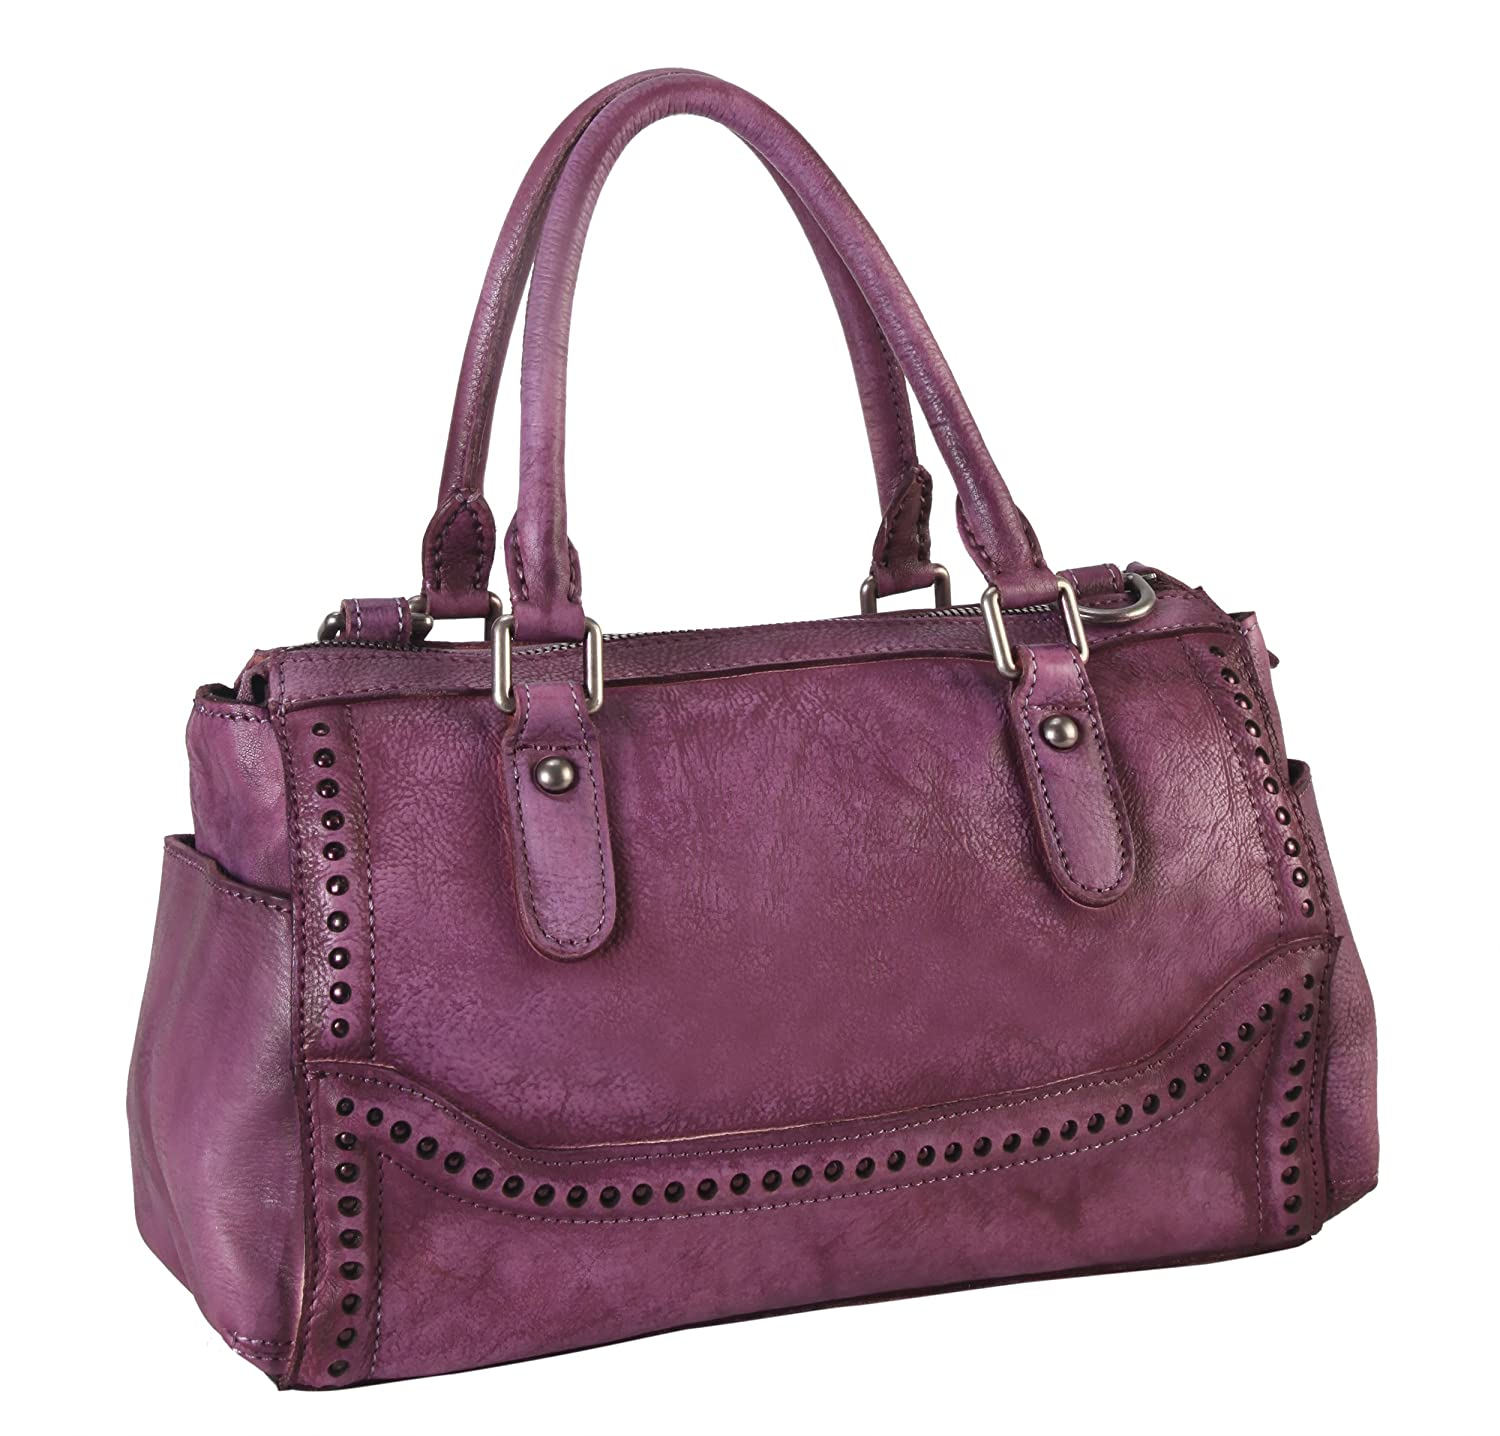 5d5068d7edc6 Diophy Genuine Leather Old Fashion Top Handles Doctor Style Handbag 140155